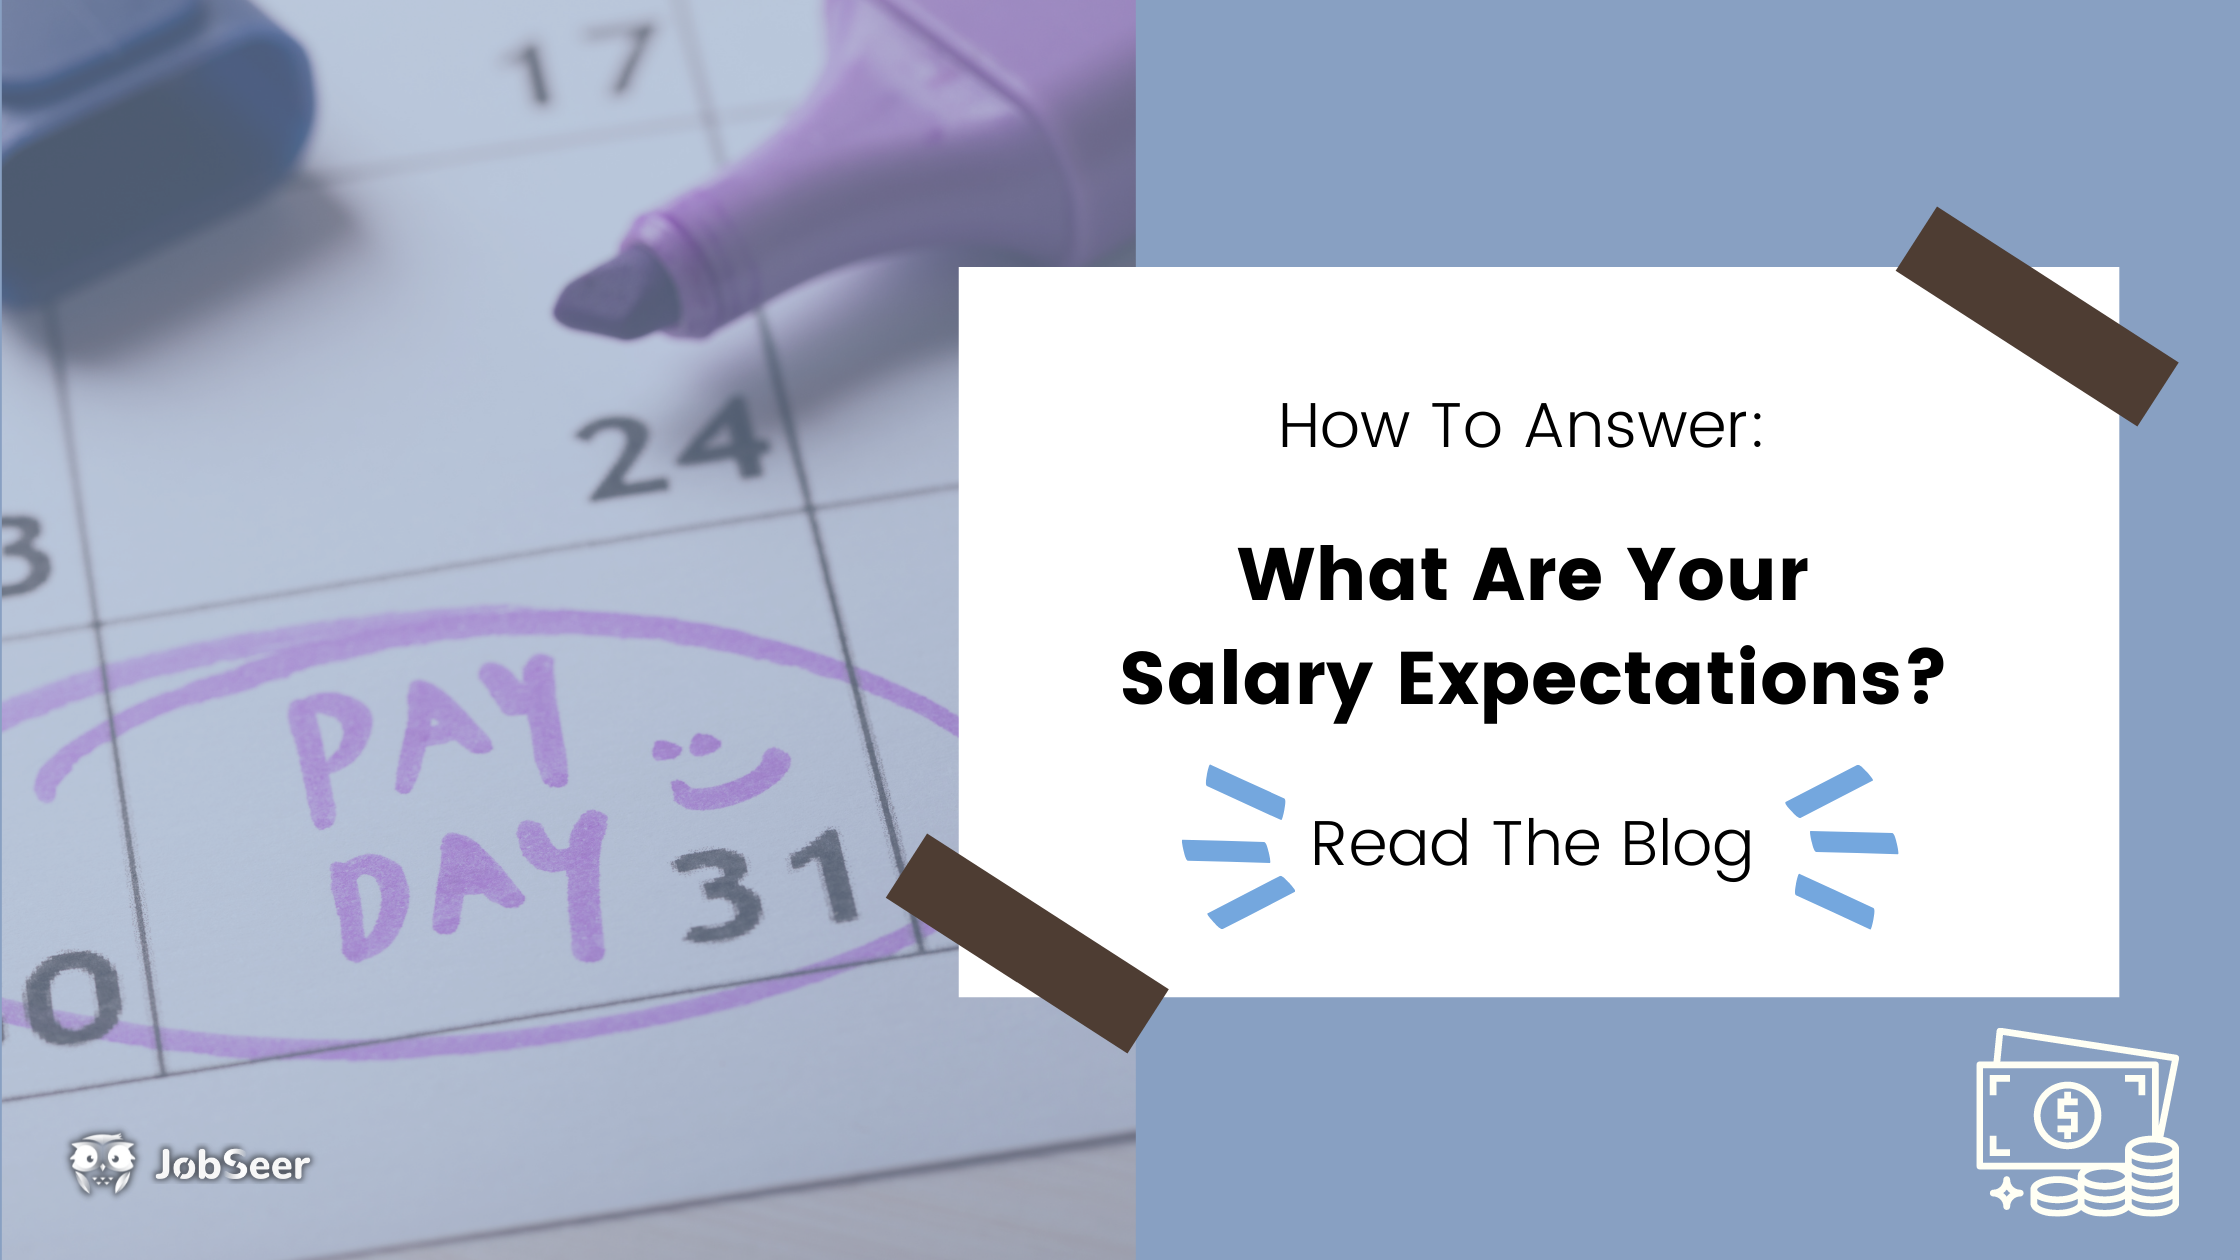 How To Answer: What Are Your Salary Expectations?